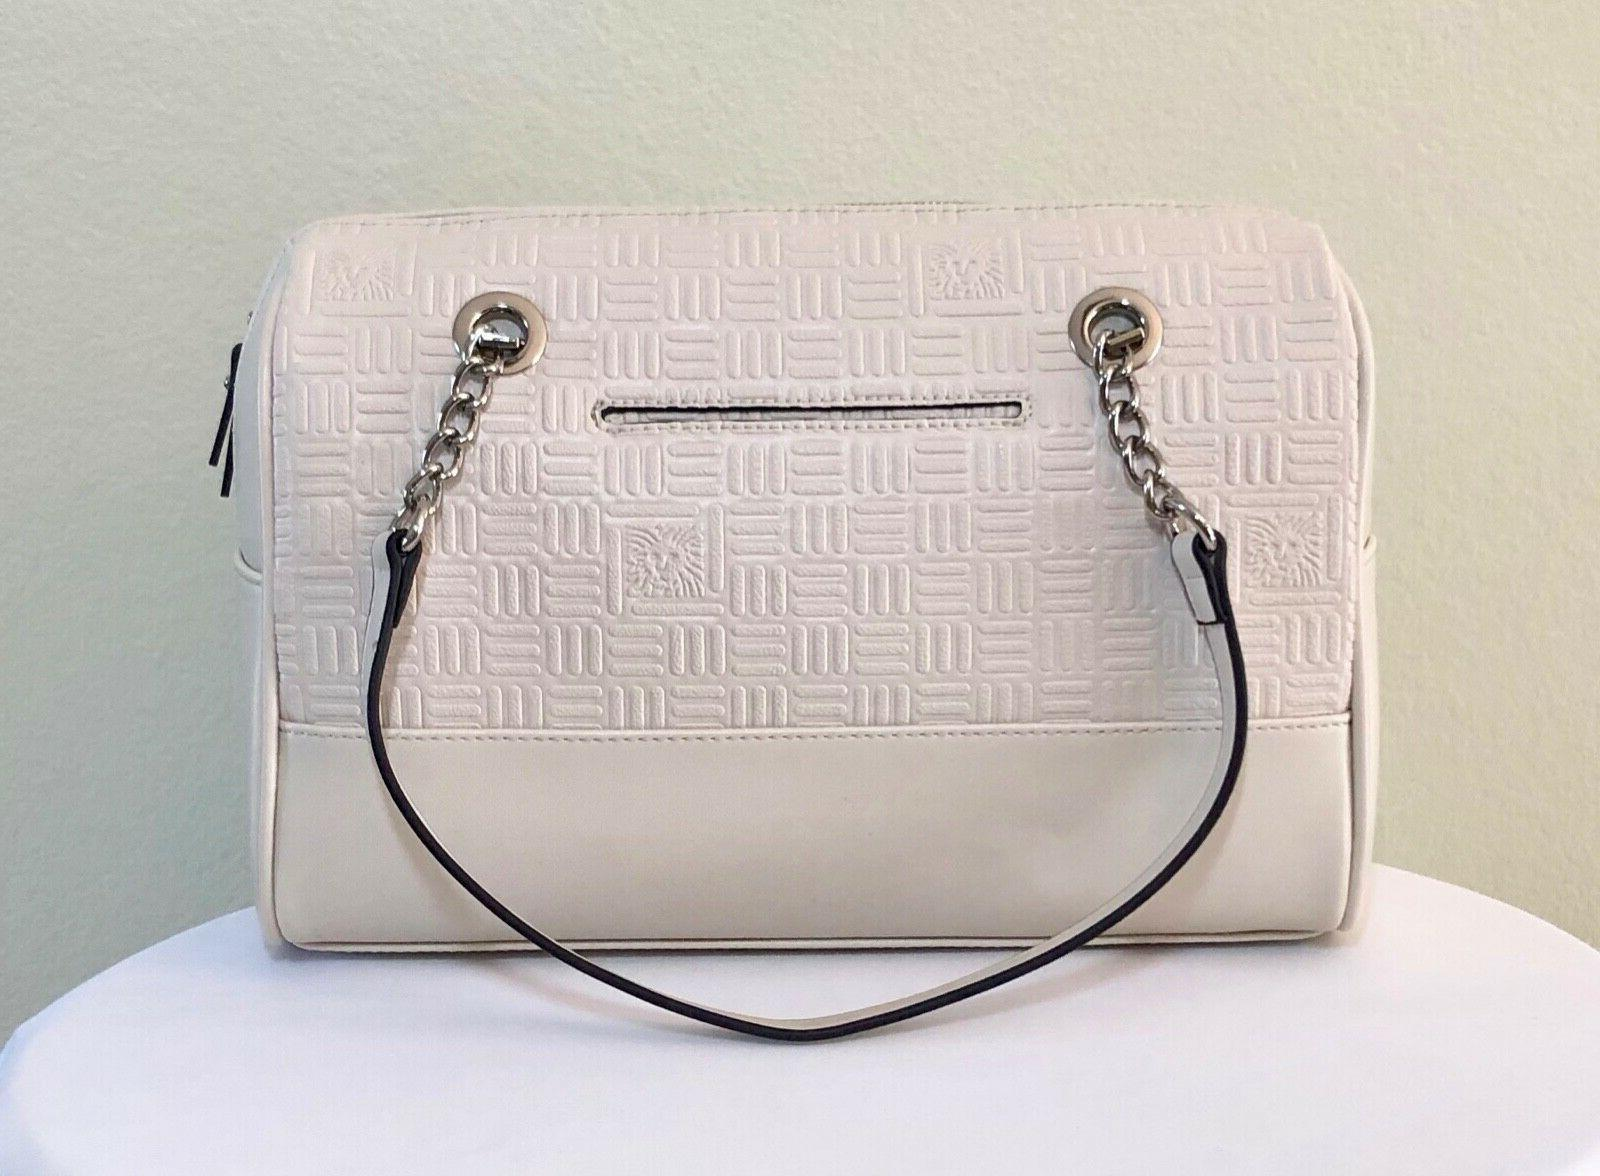 NEW Handbag Embossed Chain Ivory/Wht Purse Shoulder